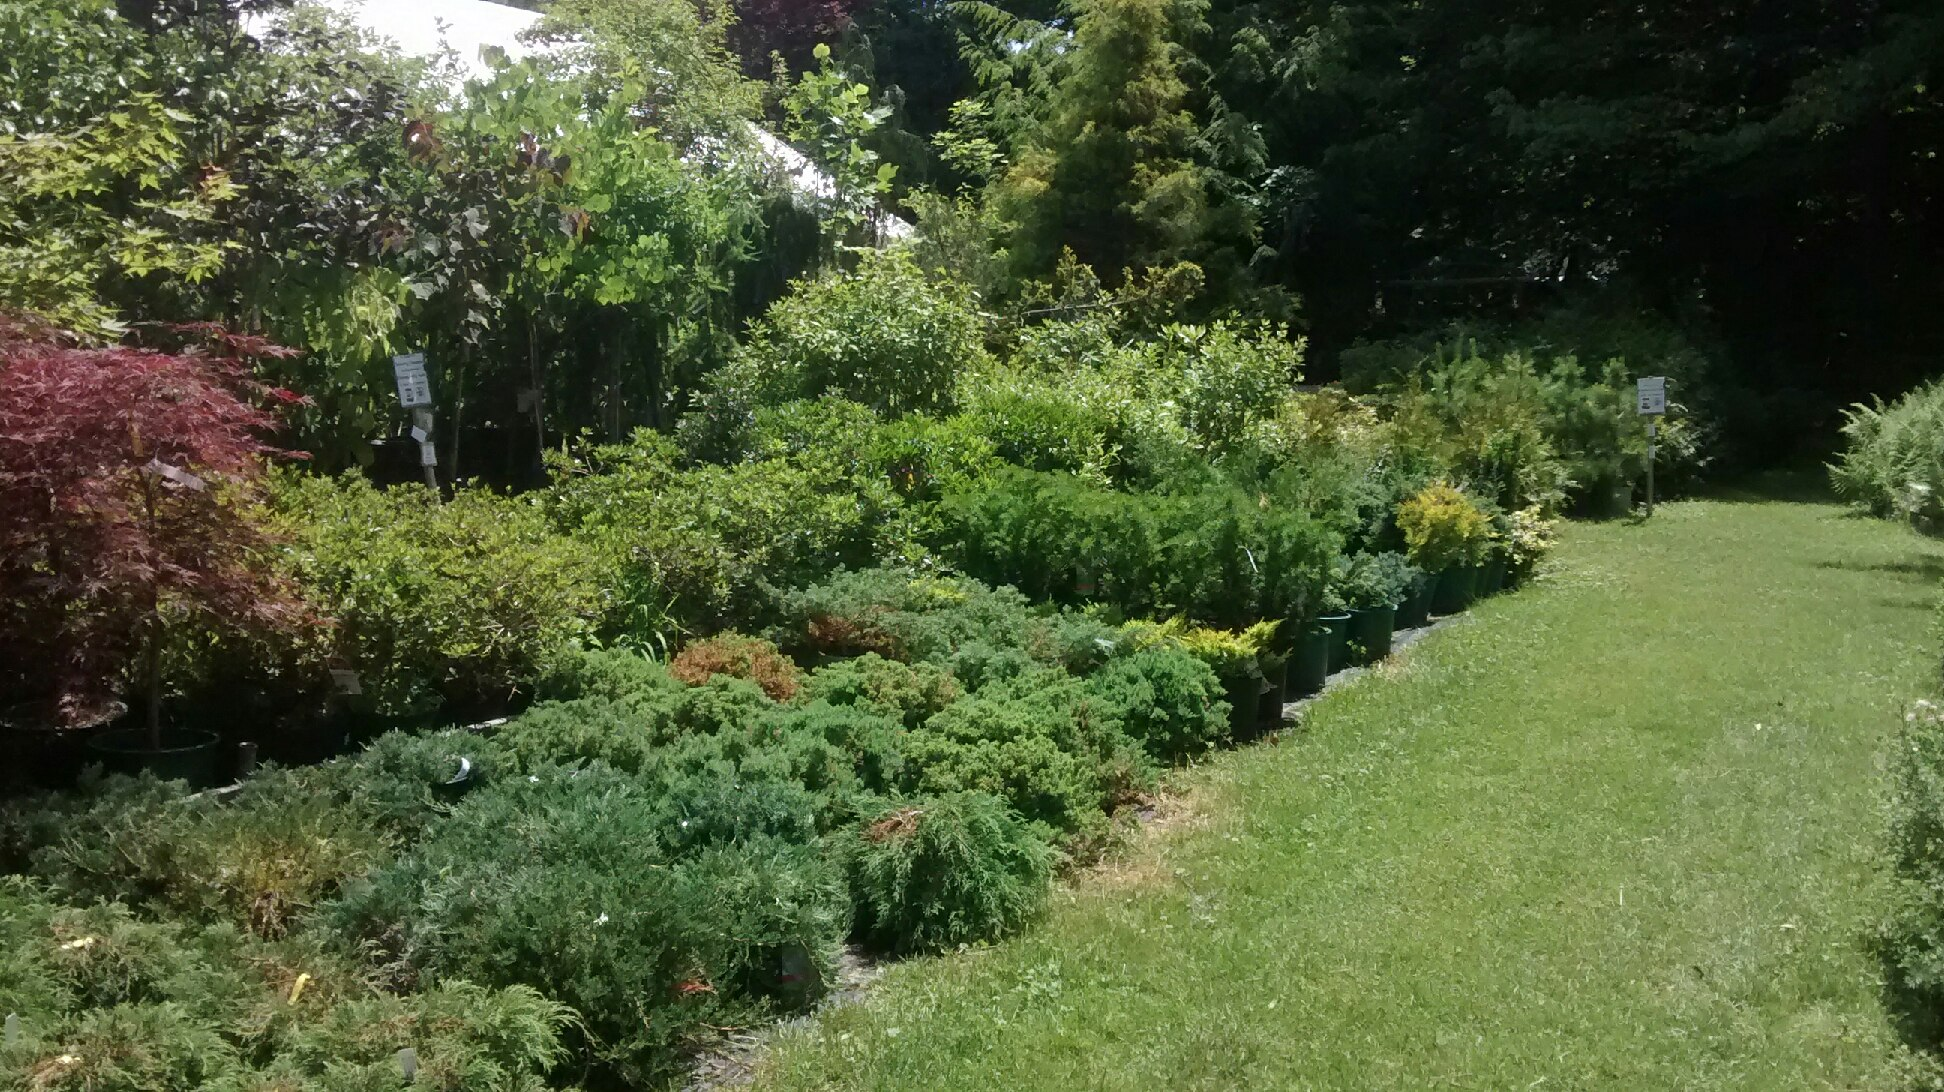 well trimmed gardening the vs garden natural formal jpg perhaps with shrubs look more american